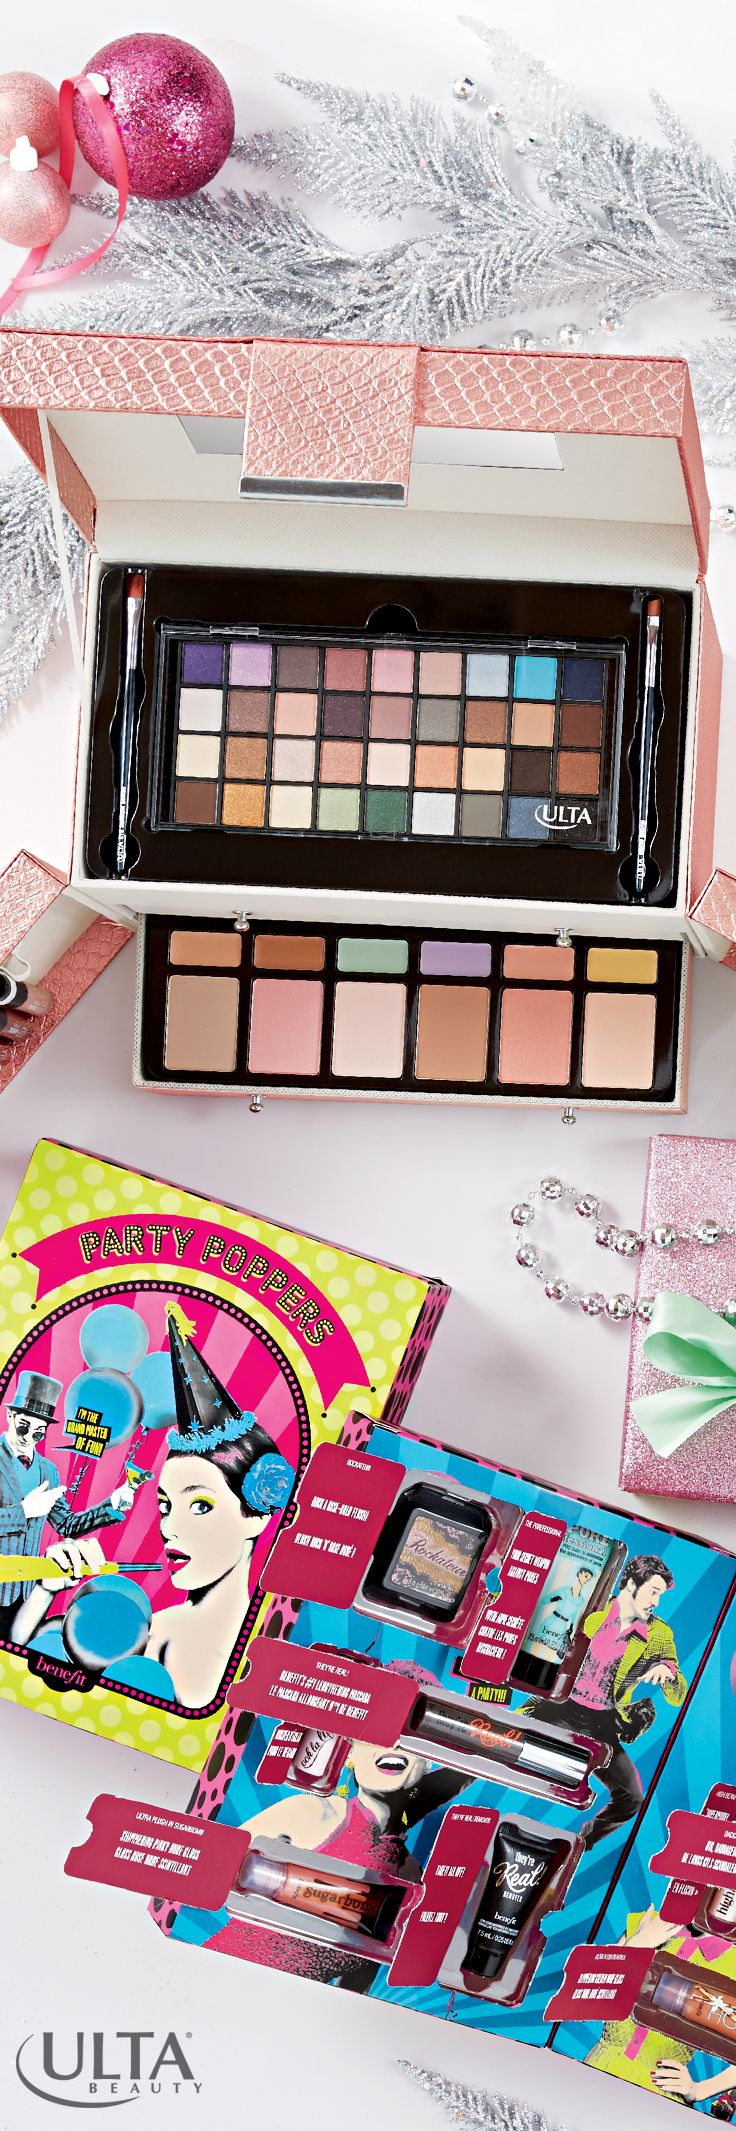 For the beauty super fan in your life, try gifting a fun party kit from benefit or a full beauty kit from Ulta Beauty collection!